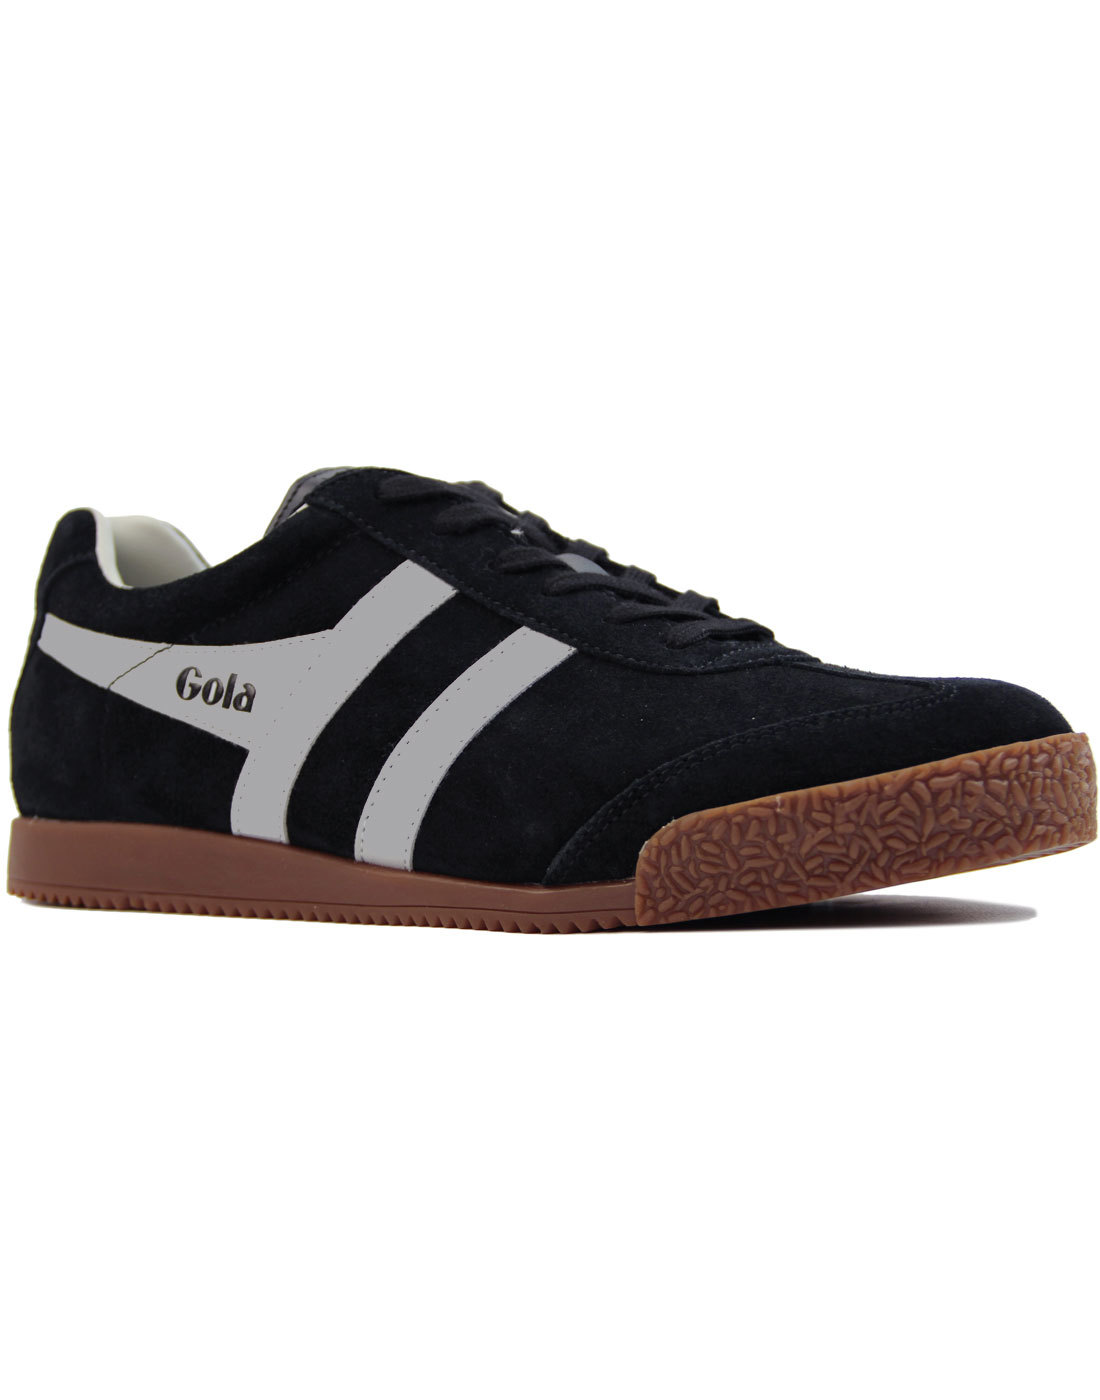 GOLA Harrier Suede Retro 1970s Trainers BLACK/GREY